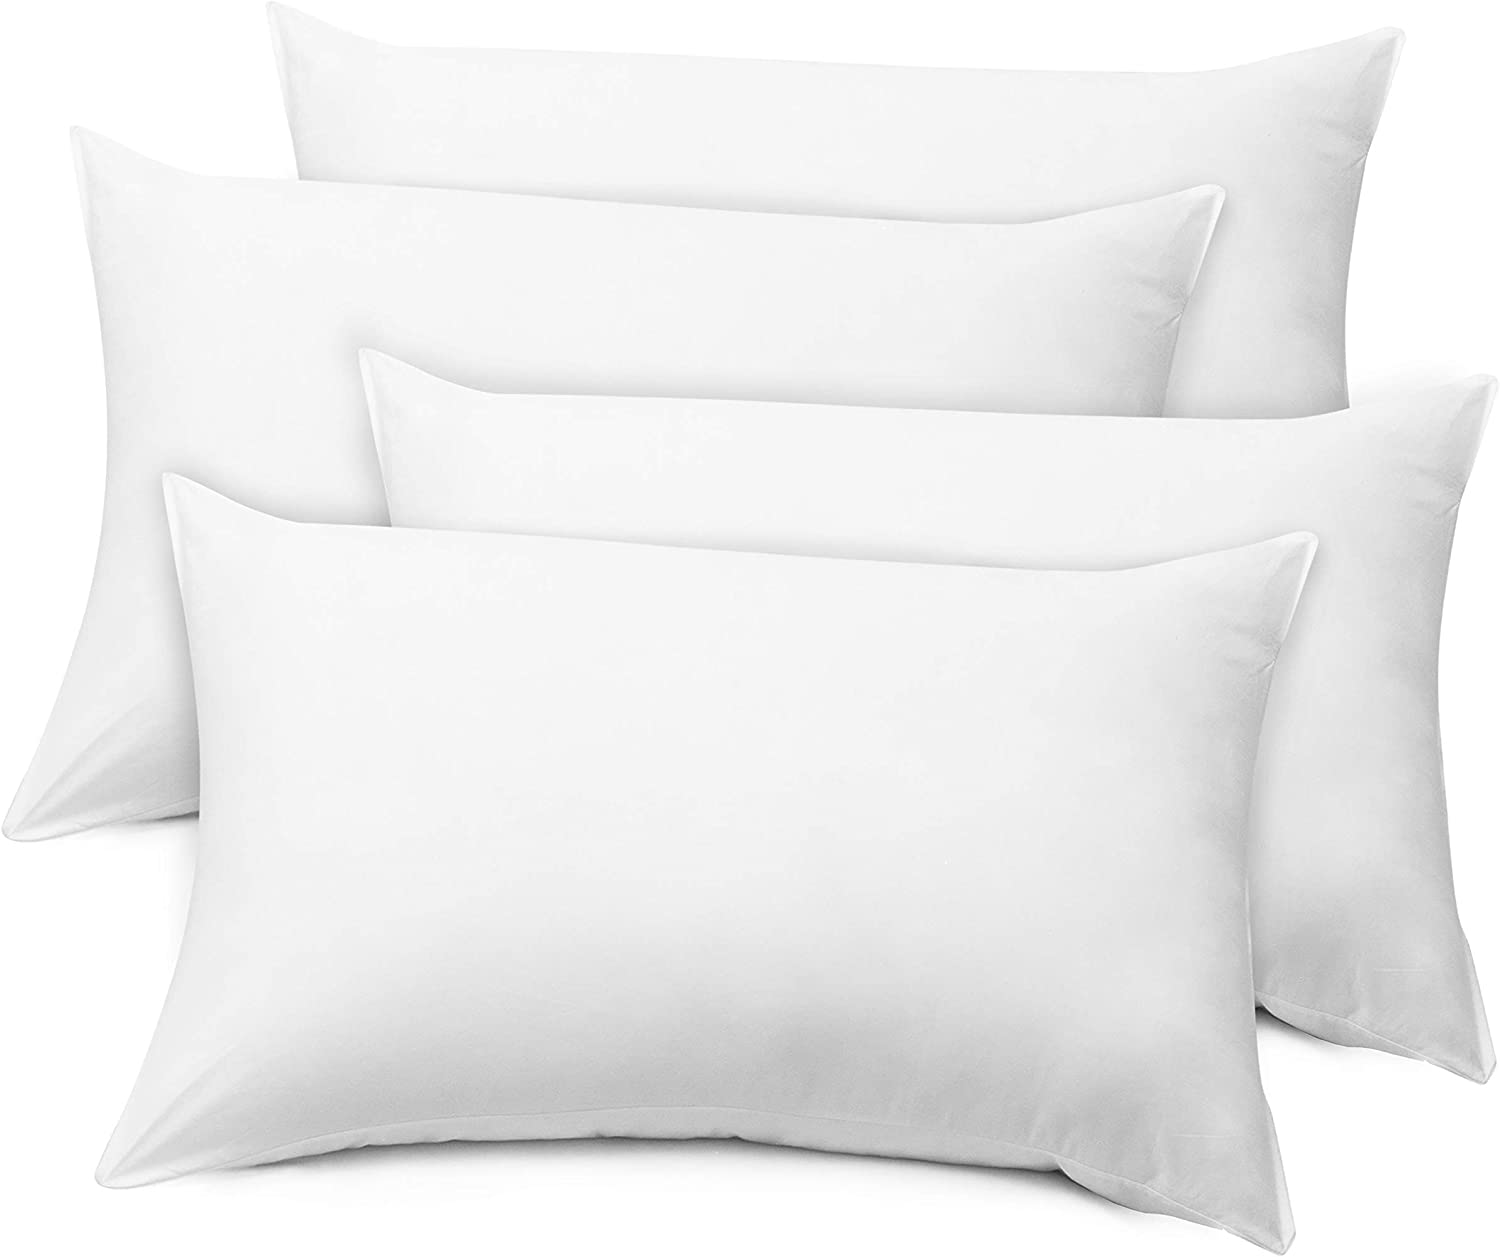 LB LAURA BENASSE LIVE THE DESIGN Elite Bed Pillows Queen Size Set of 4, Hotel Pillows for Sleeping 4 Pack, Hypoallergenic Down Alternative Microfiber Soft Plush Washable Pillow Inserts